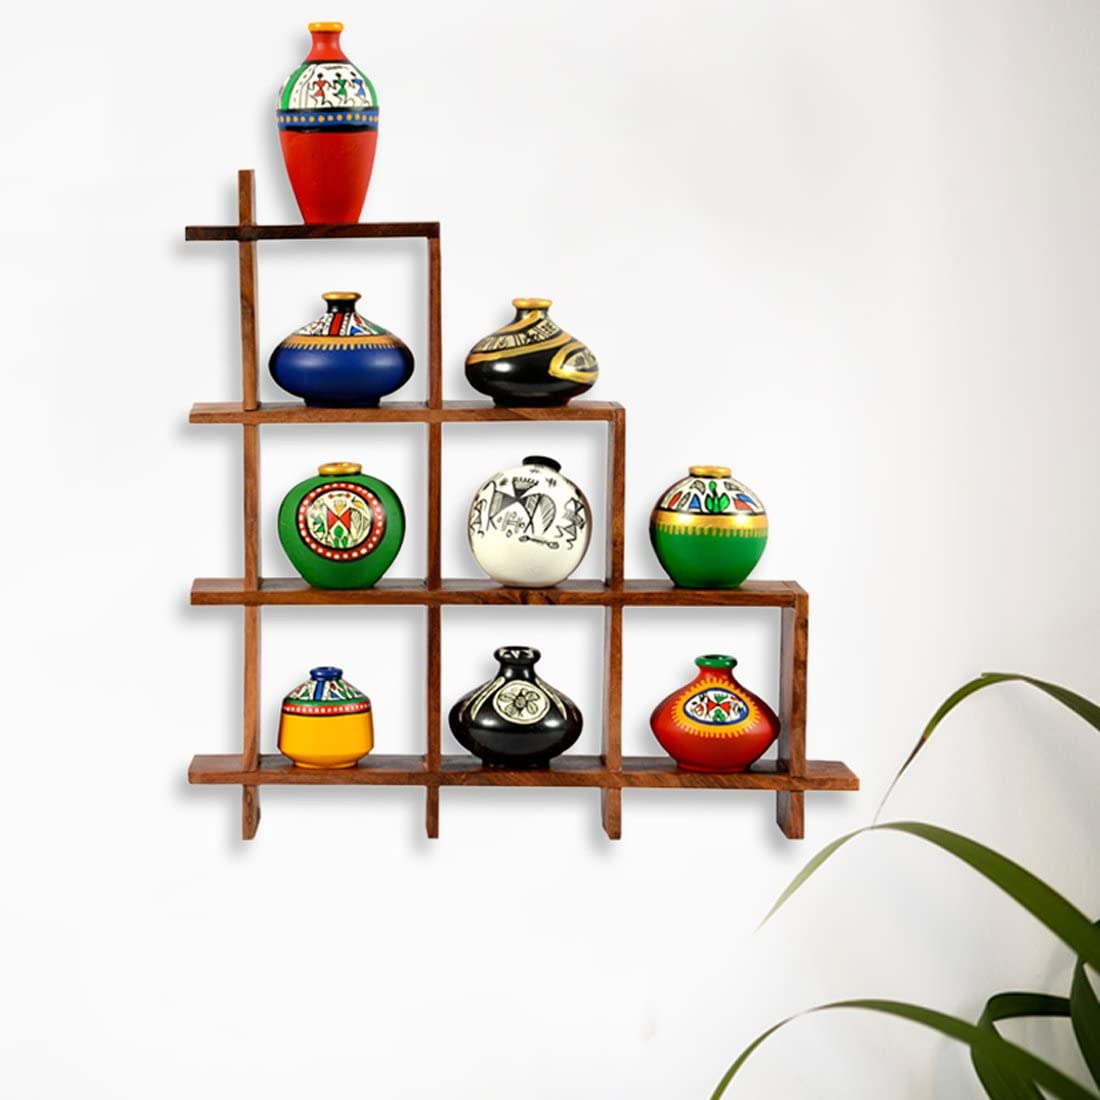 ExclusiveLane 9 Terracotta Warli Handpainted Pots with Sheesham Wooden Frame Wall Hanging - Wall Shelves for Bedroom Corner for Living Room Terracotta Pots Wall Hanging Shelf Indian Home Décor